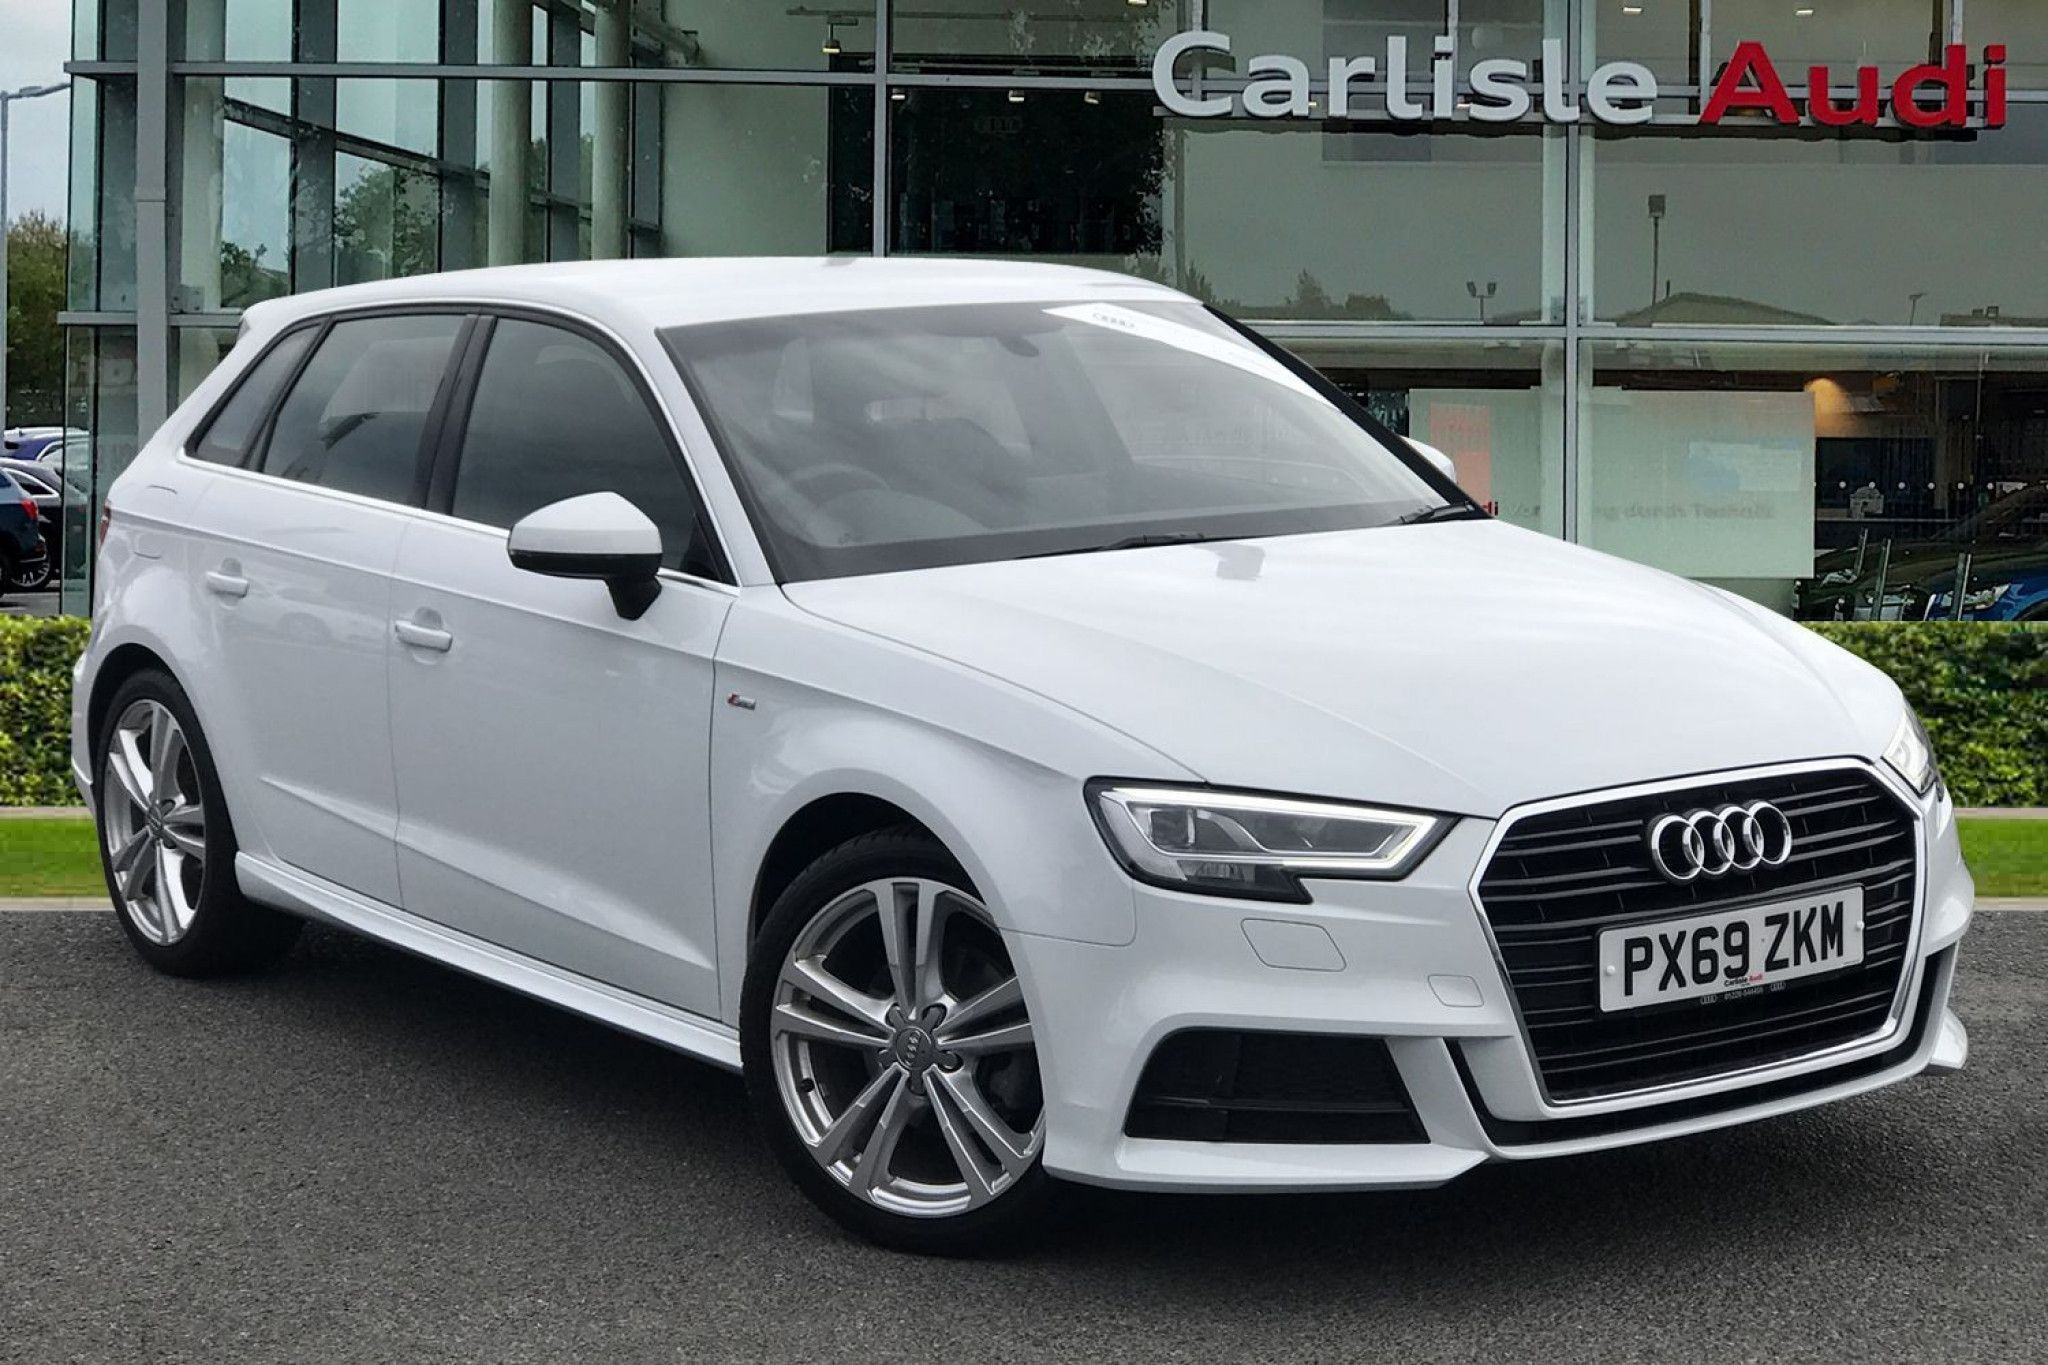 AUDI A3 30 TDI 116 S Line 5dr S Tronic For Sale in 2020